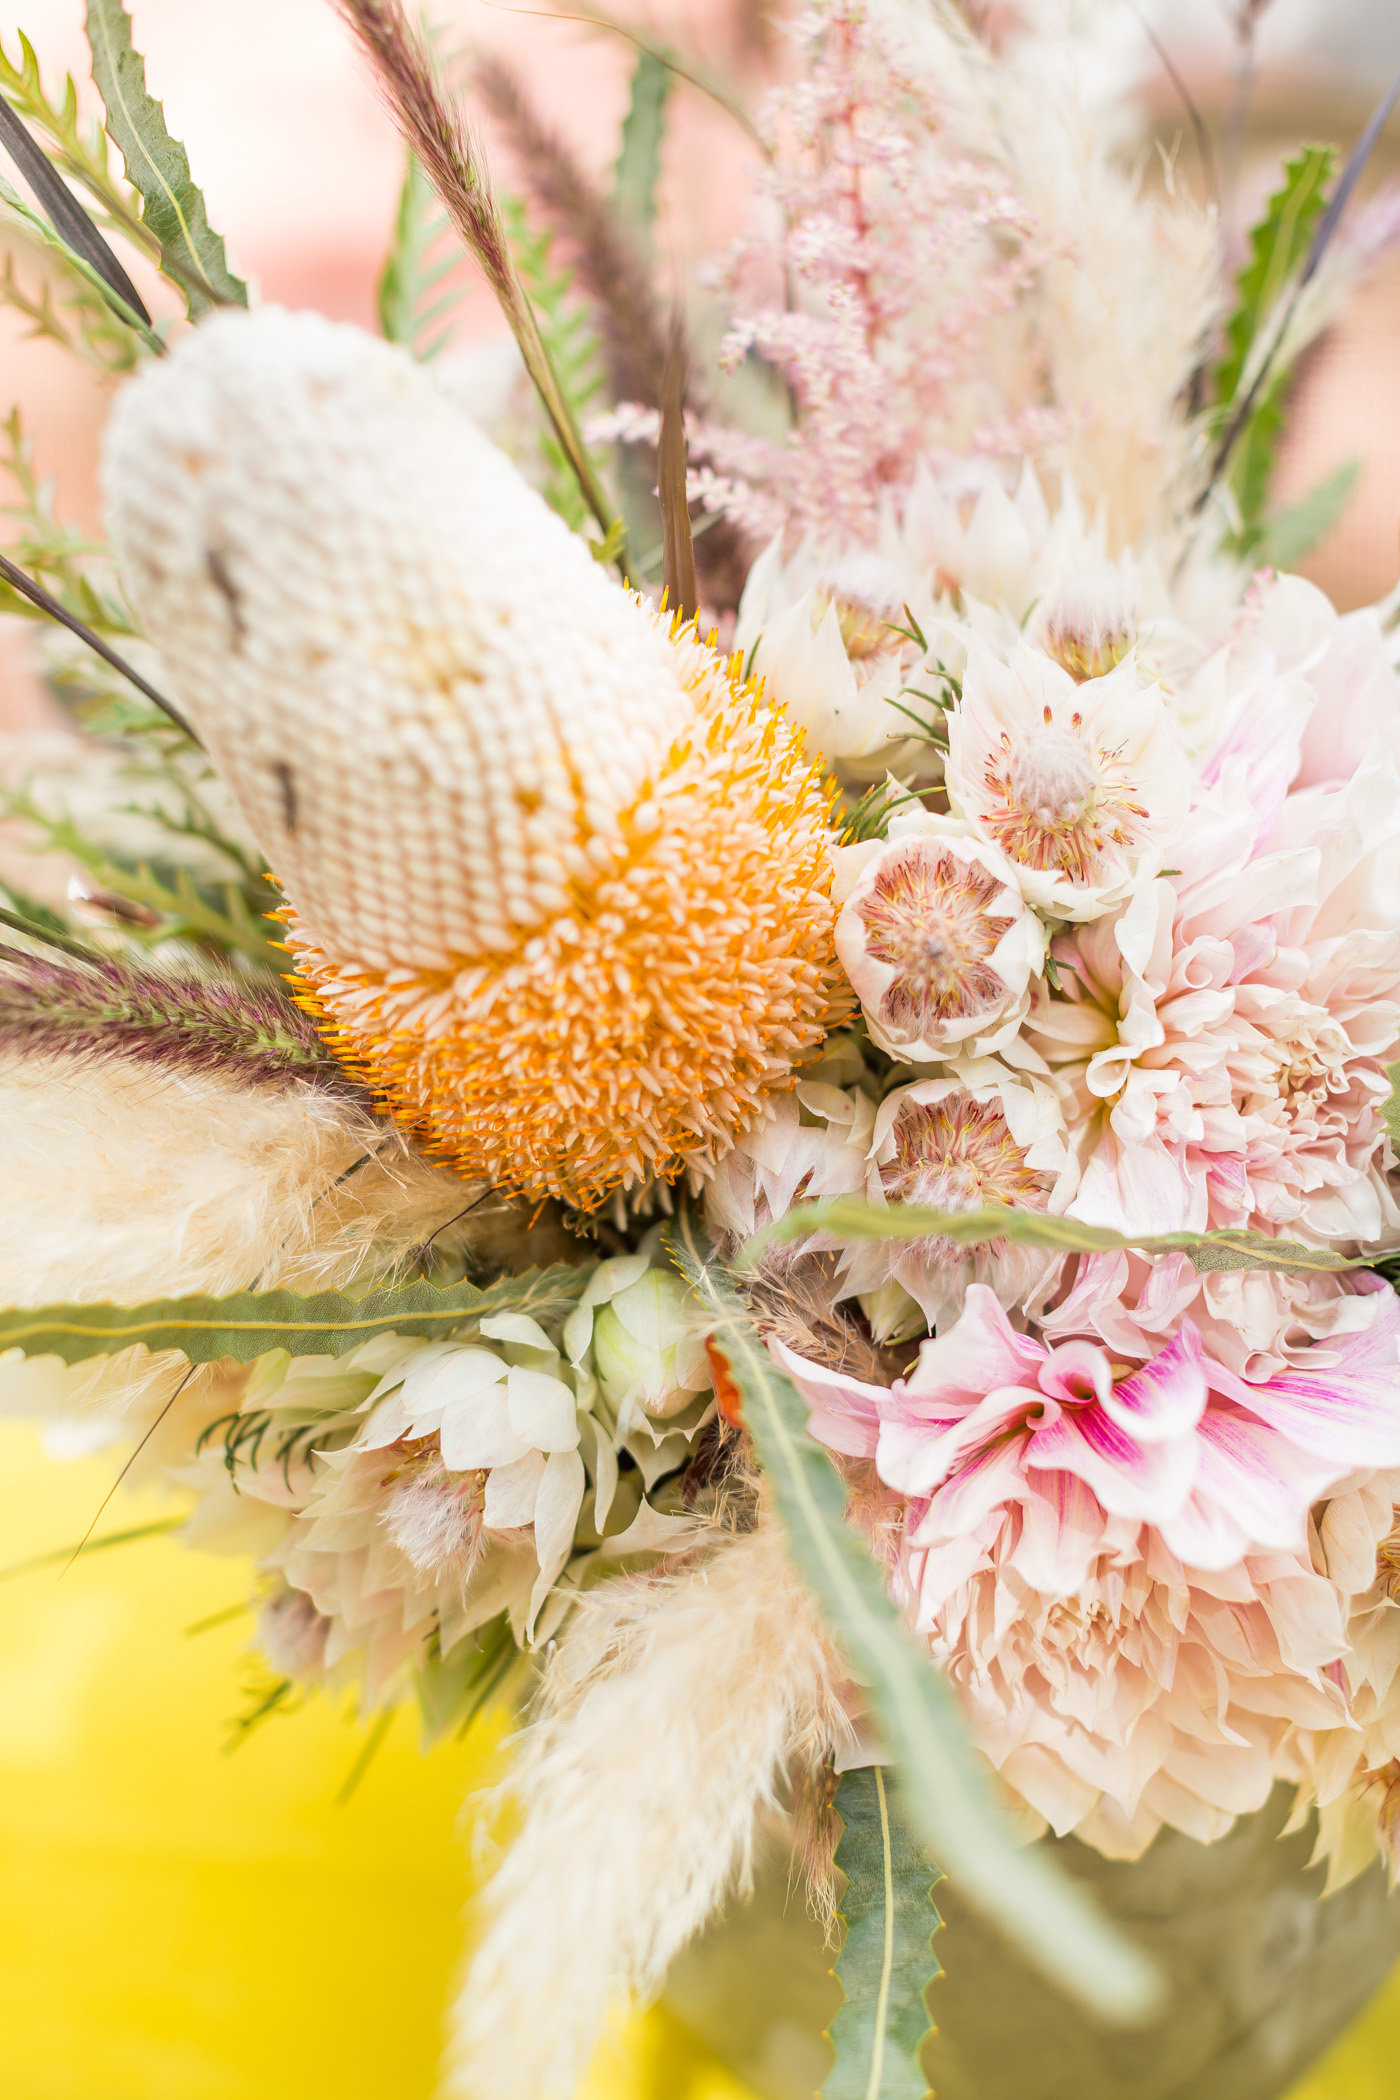 king protea floral arrangements - photo by Karlee K Photography http://ruffledblog.com/cheerful-desert-wedding-inspiration-with-bright-yellow